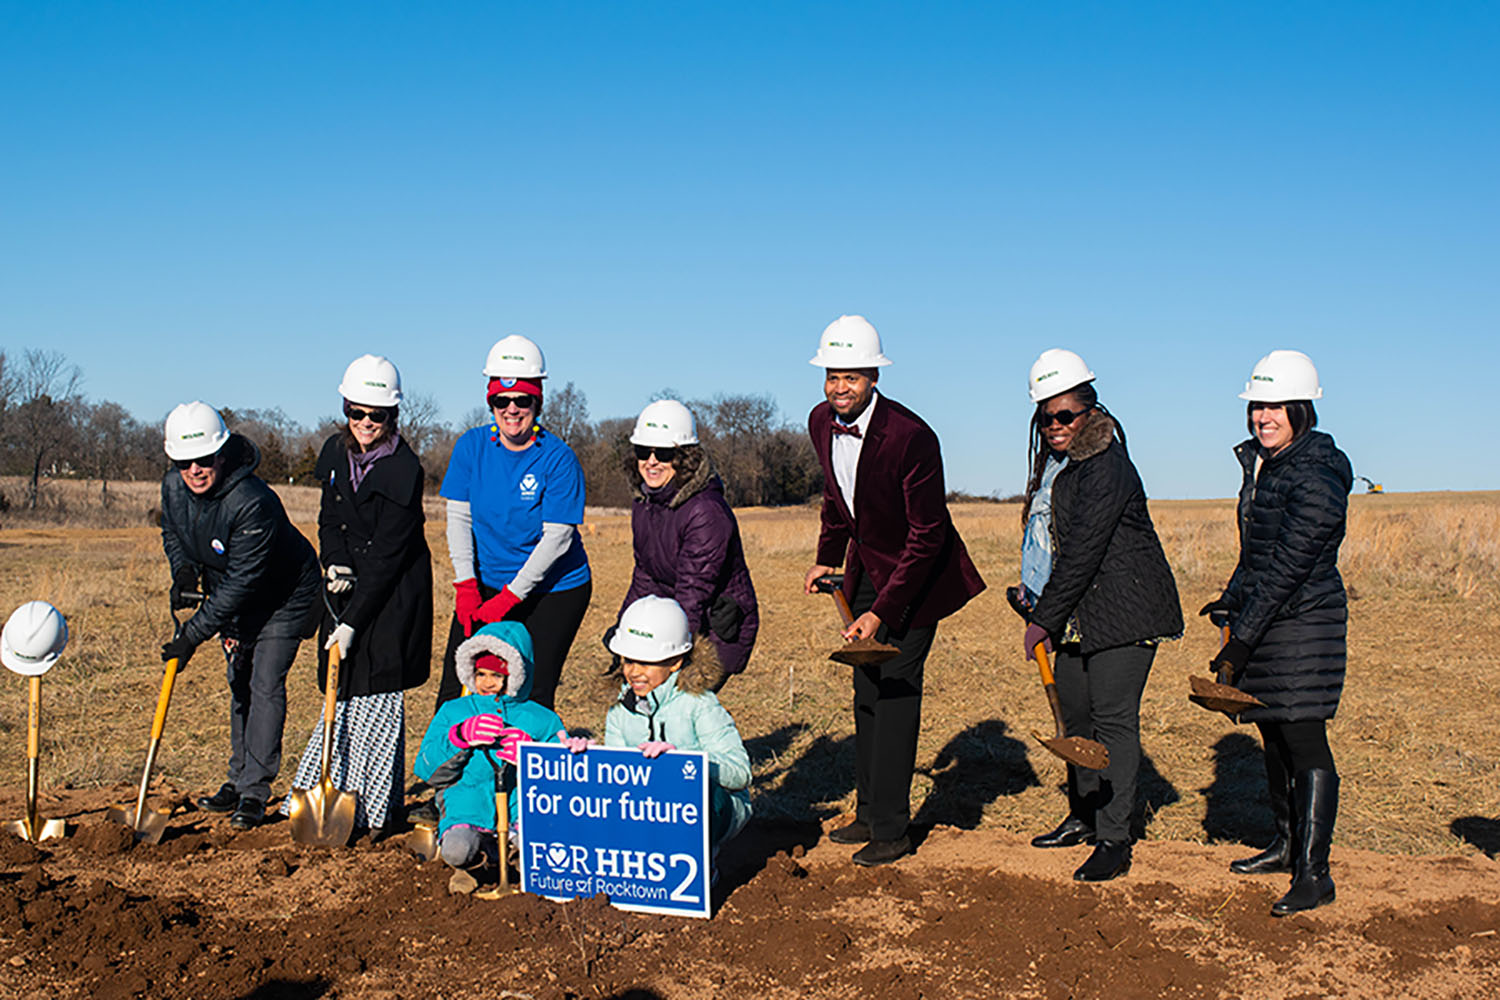 Representatives of the For HHS2 group dig into the ground at the new site. Members of the community and city council attended the event to celebrate the start of the construction of the new high school.